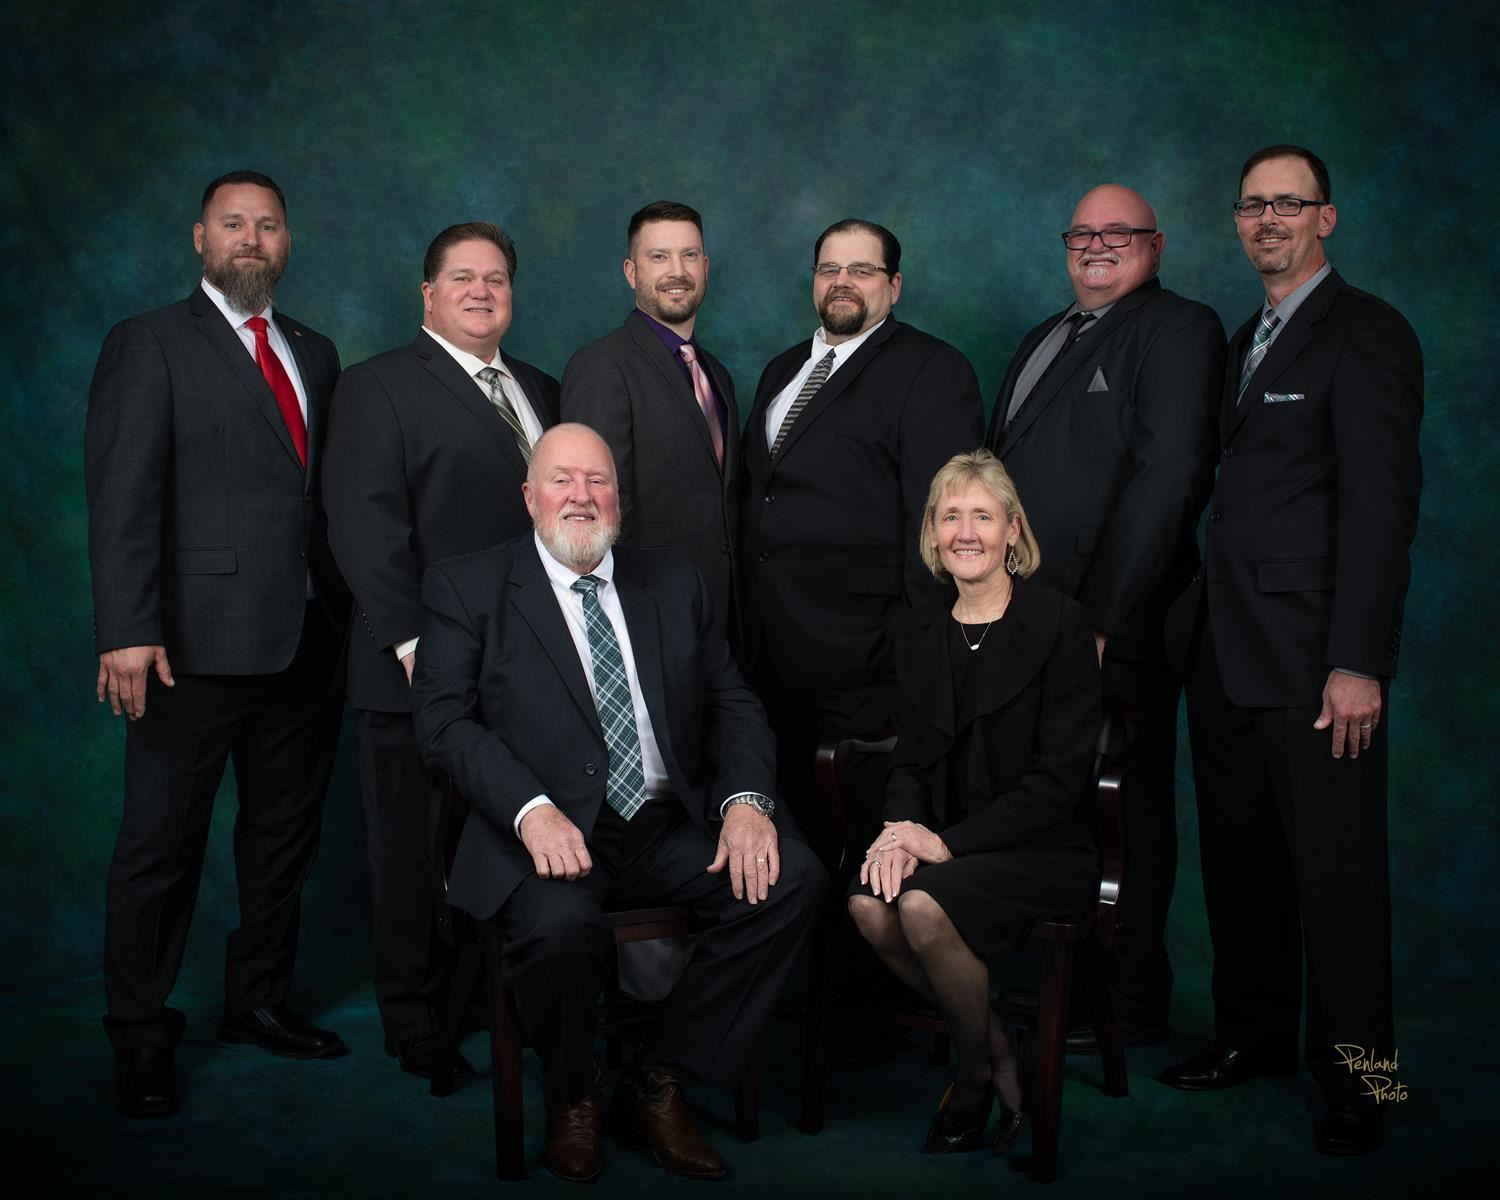 SFISD School Board Members Photo